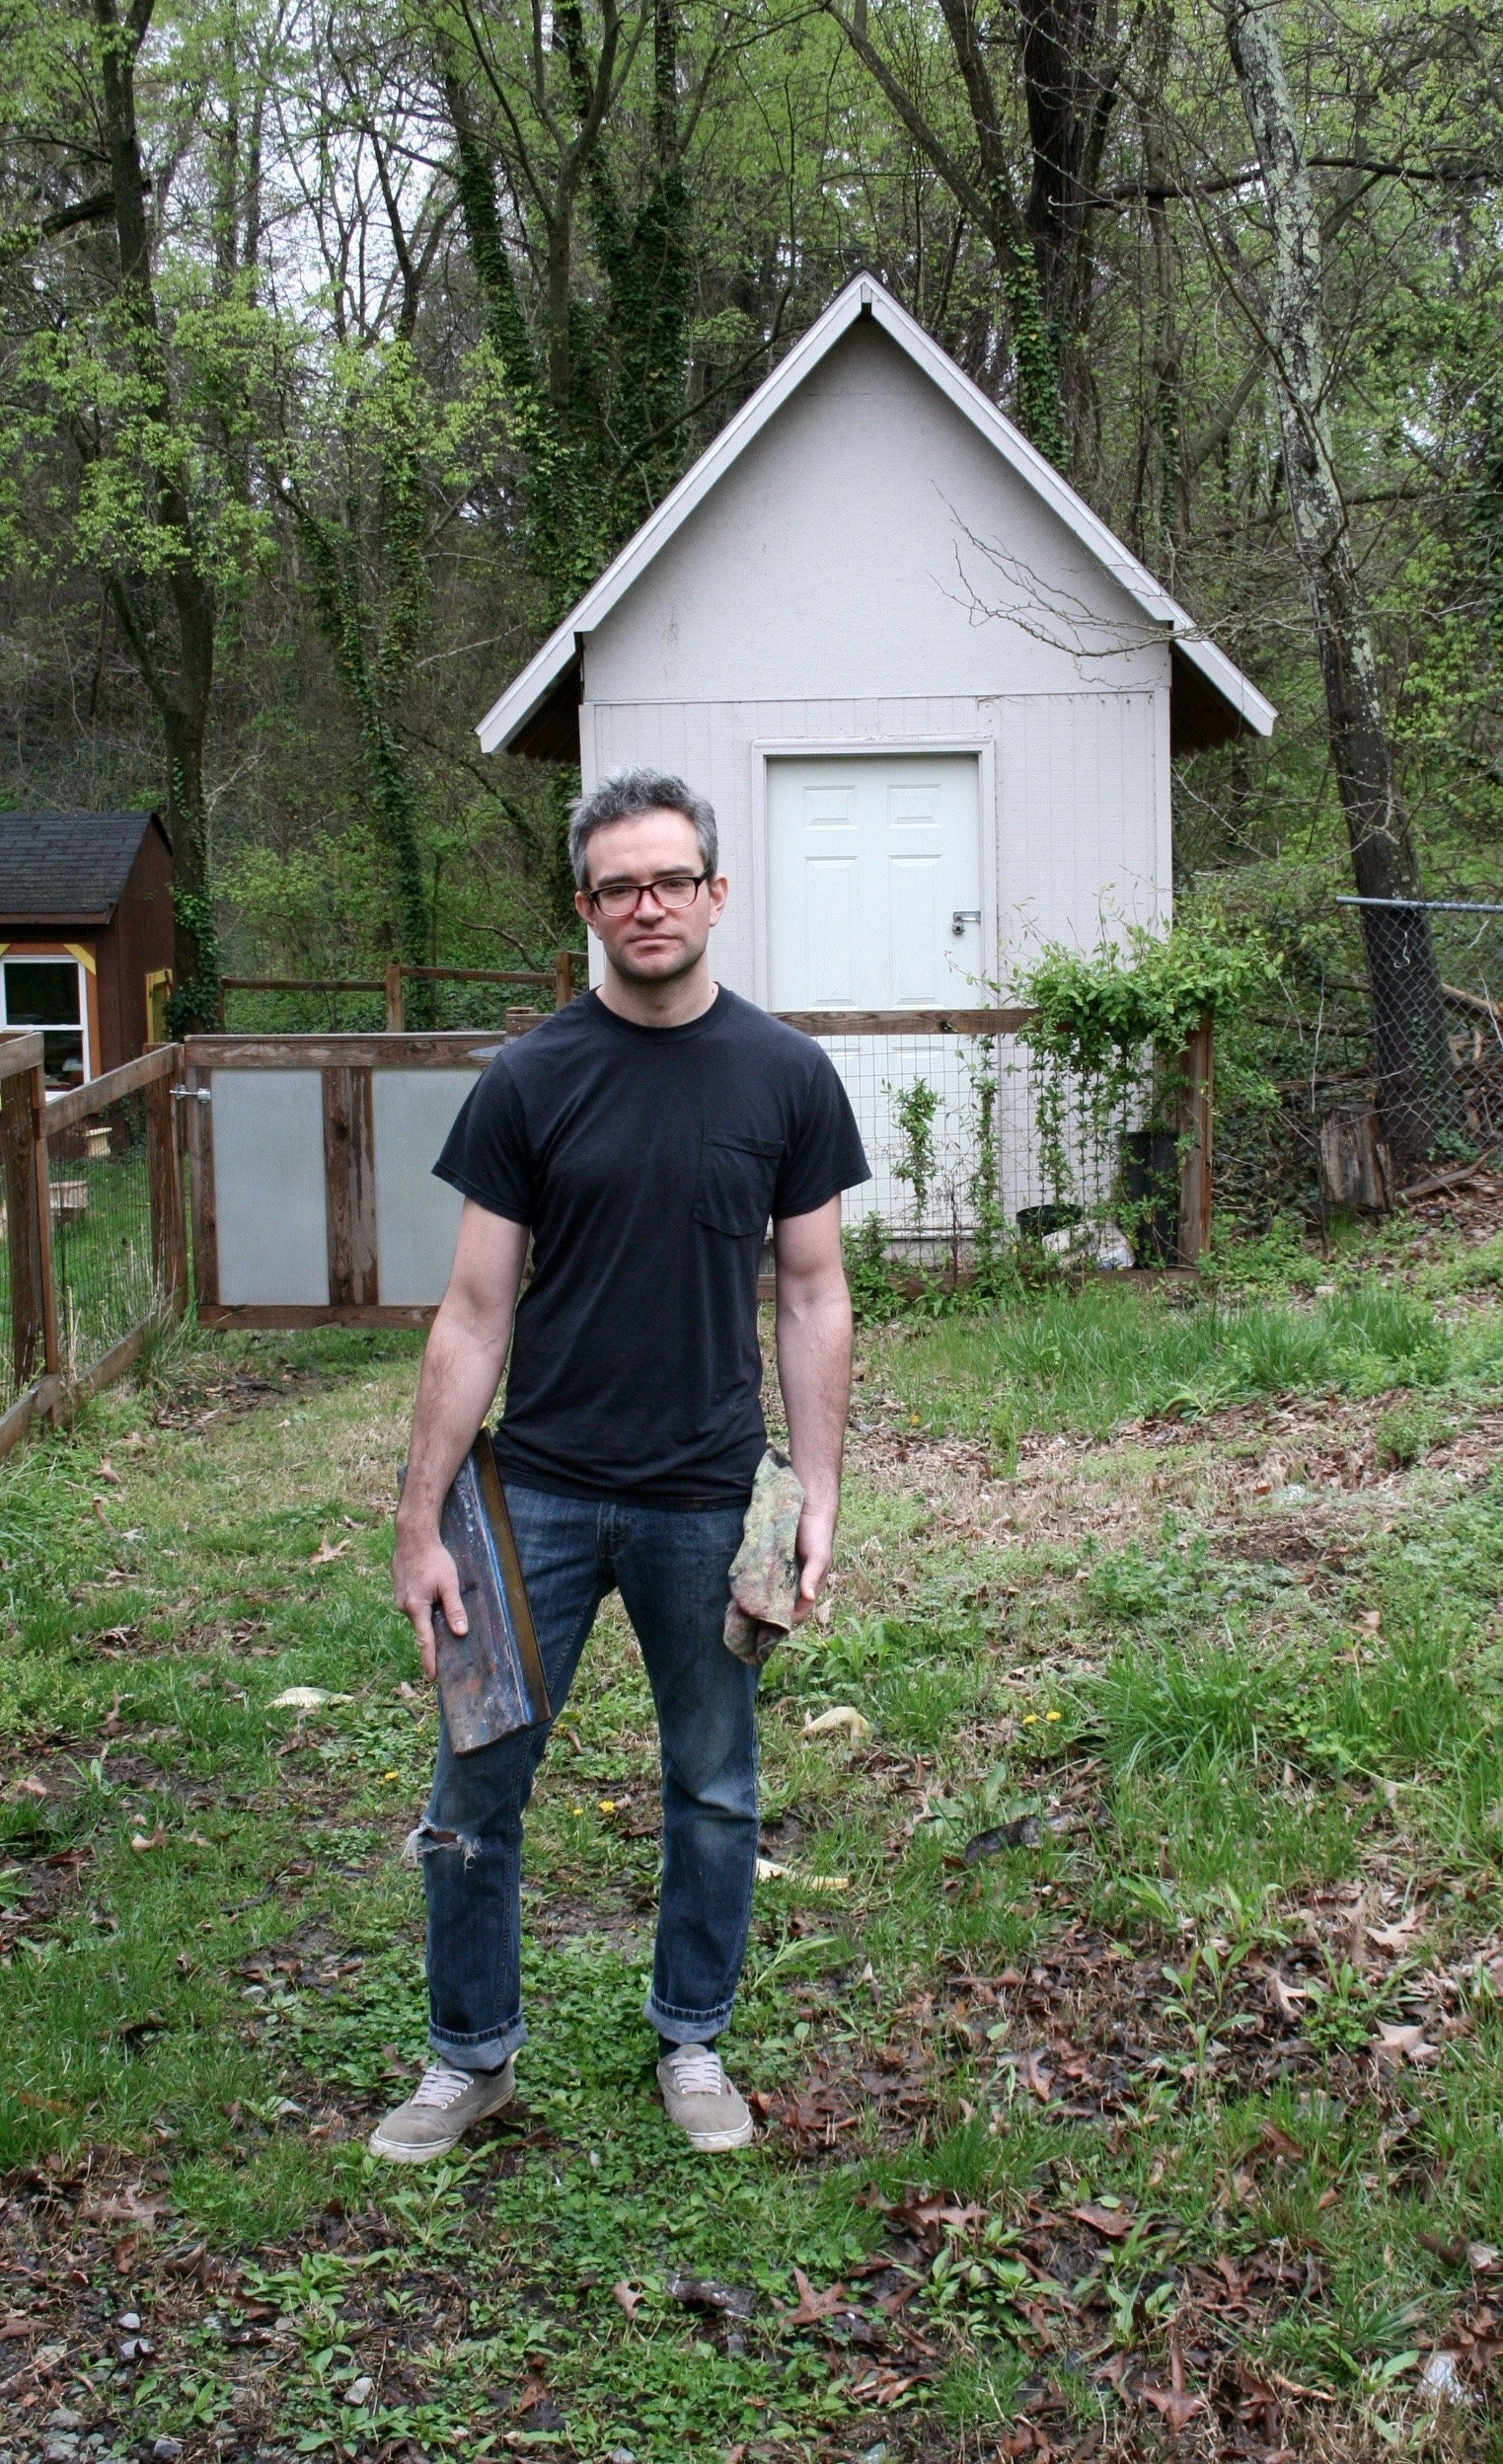 A man stands in a yard holding screen printing equipment. There is a shed behind him